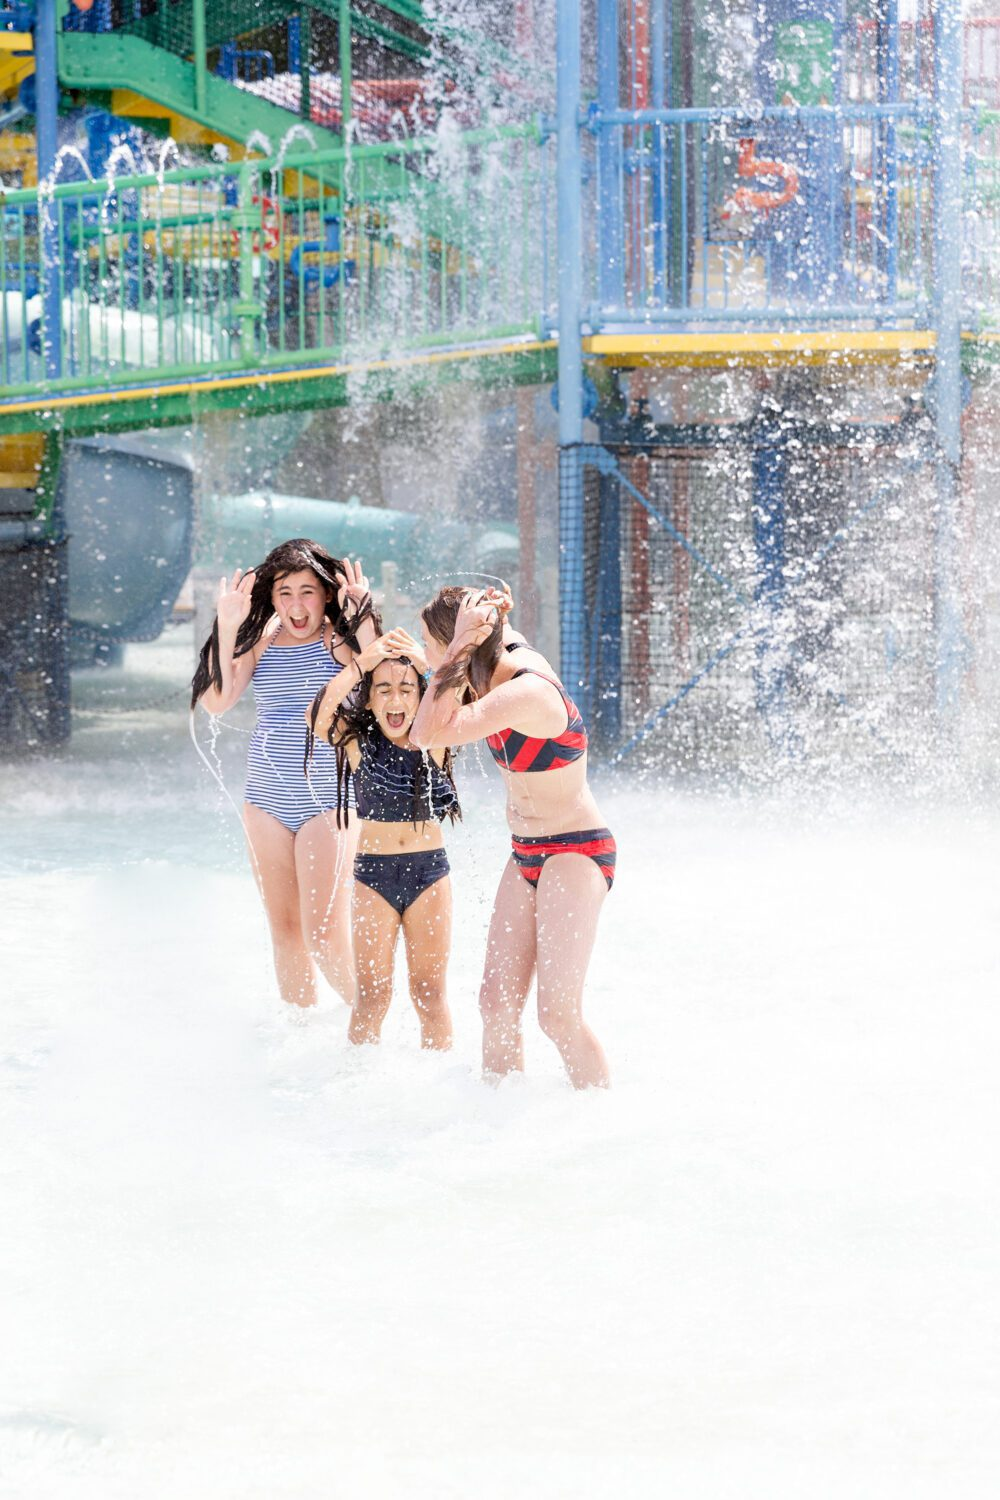 three girls getting water dumped on their heads